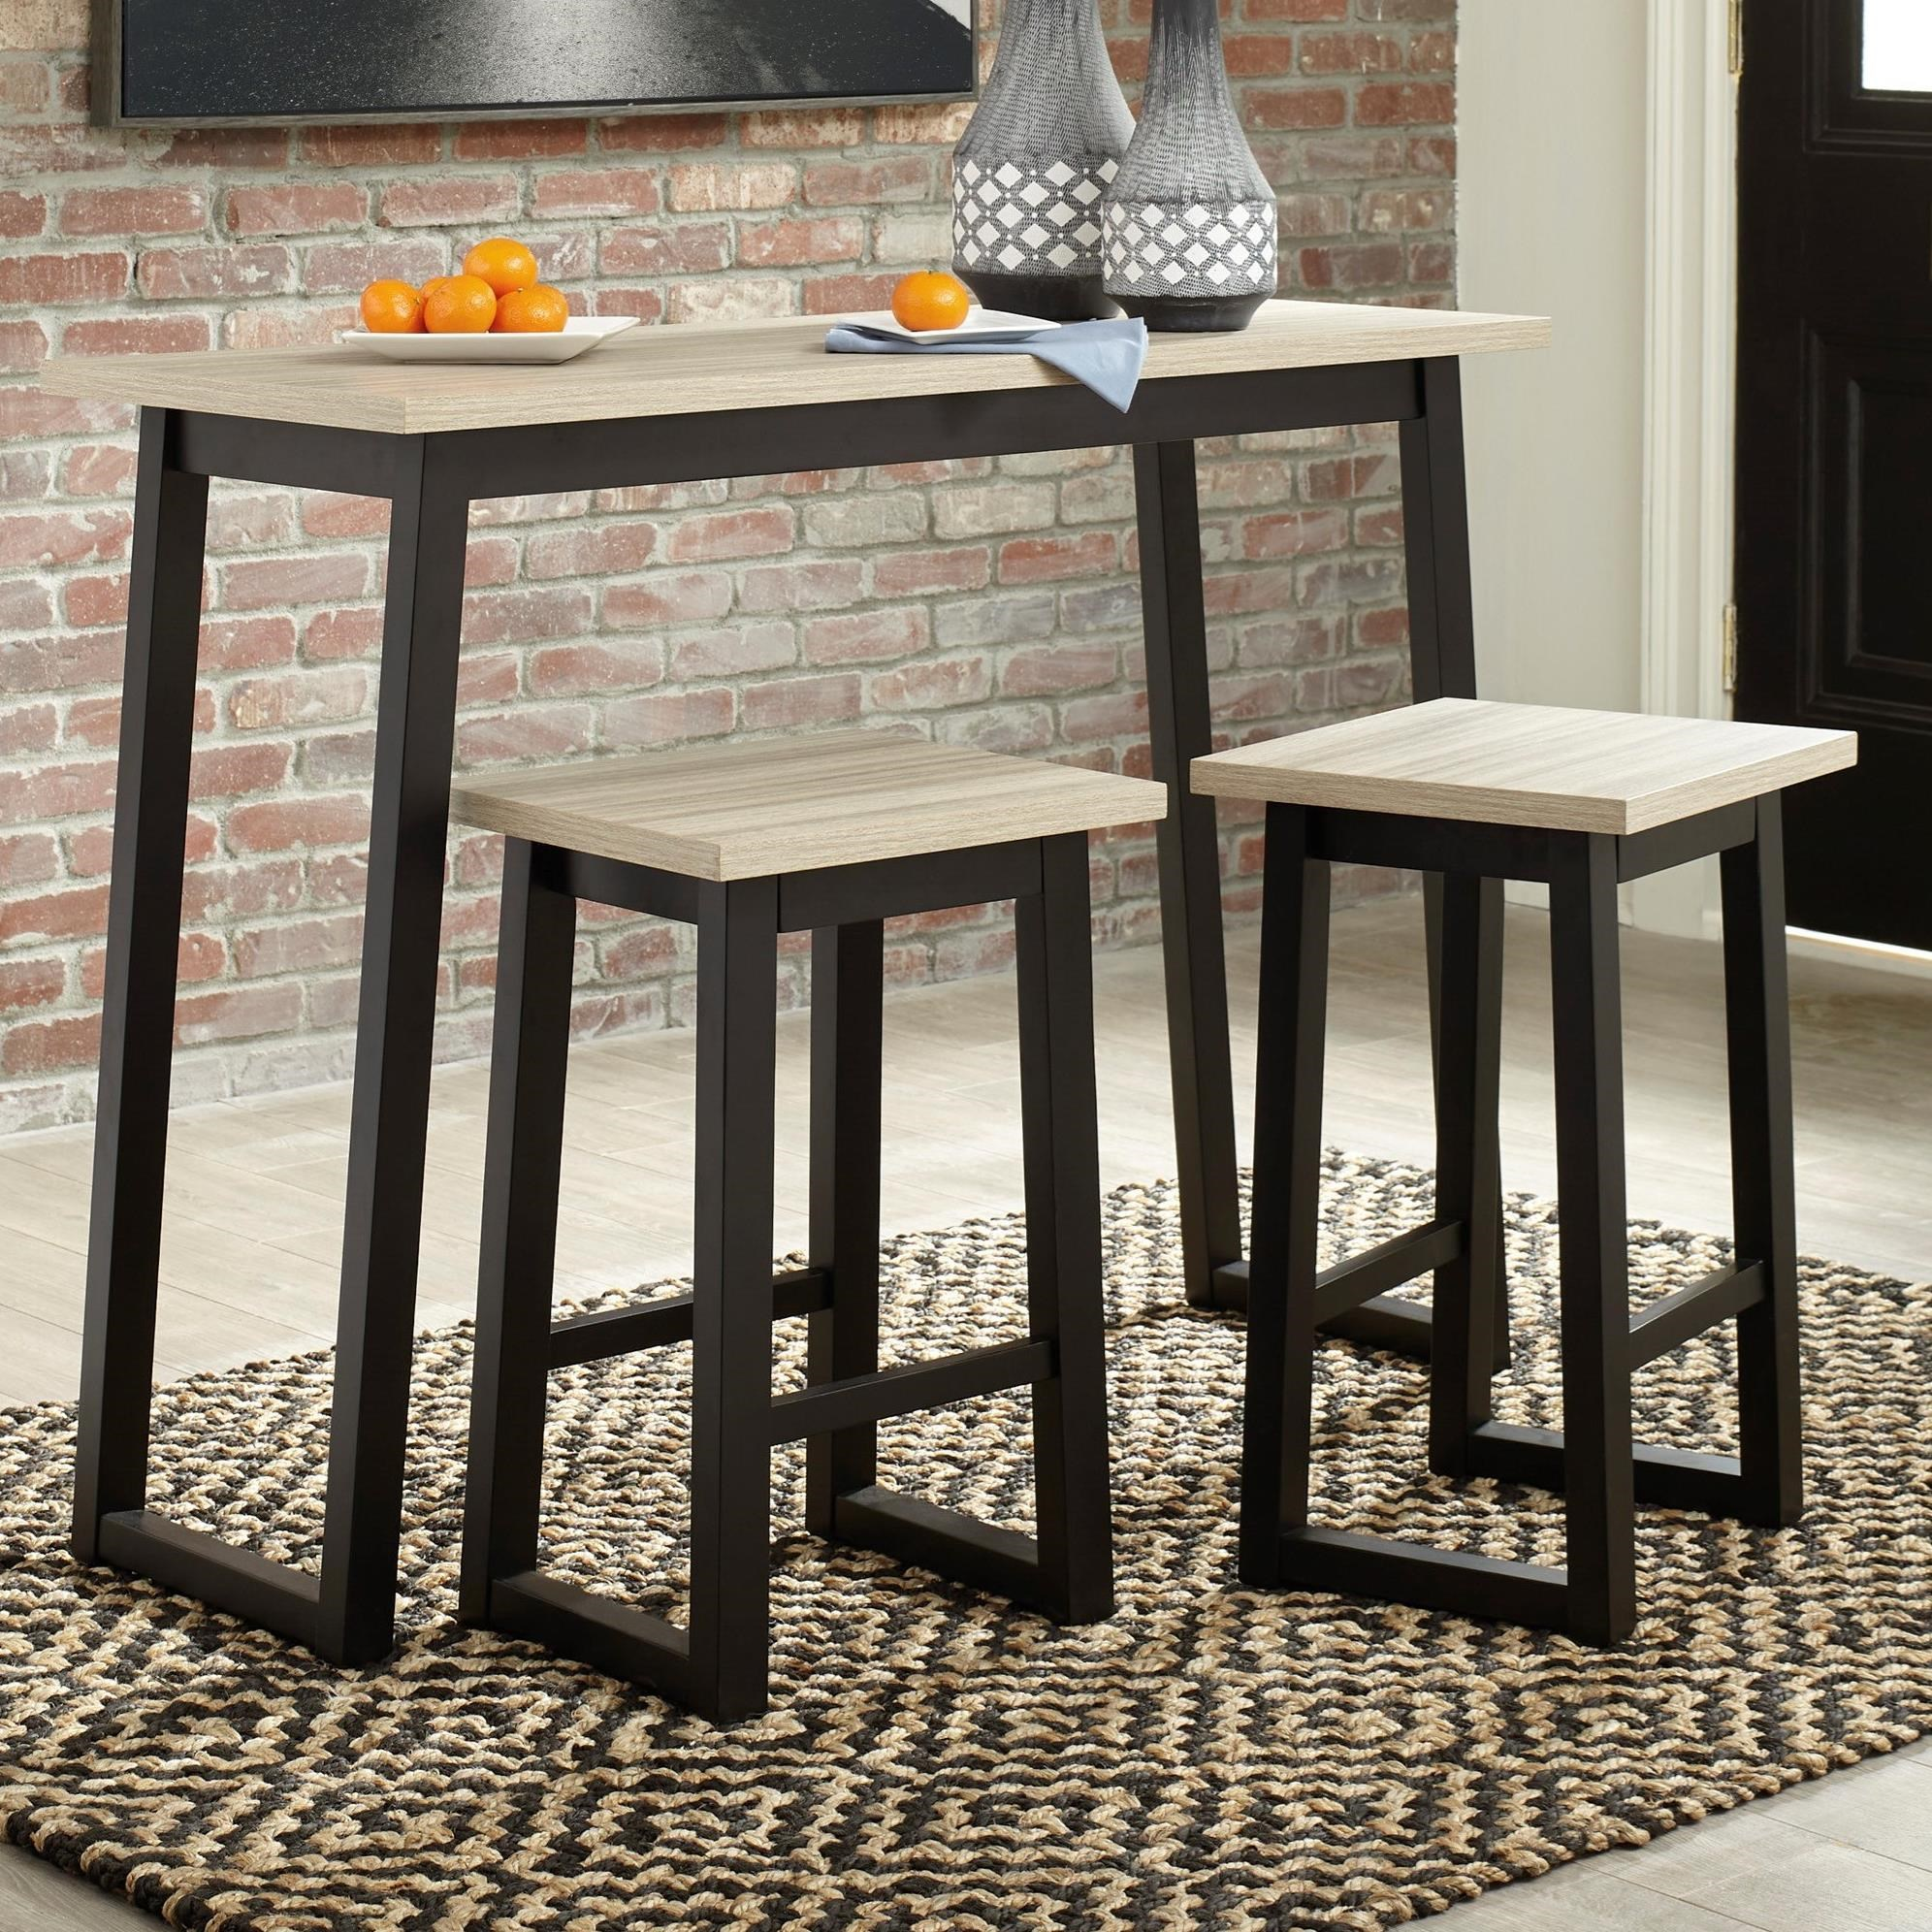 Waylowe Rectangular Counter Table Set by Signature Design by Ashley at HomeWorld Furniture